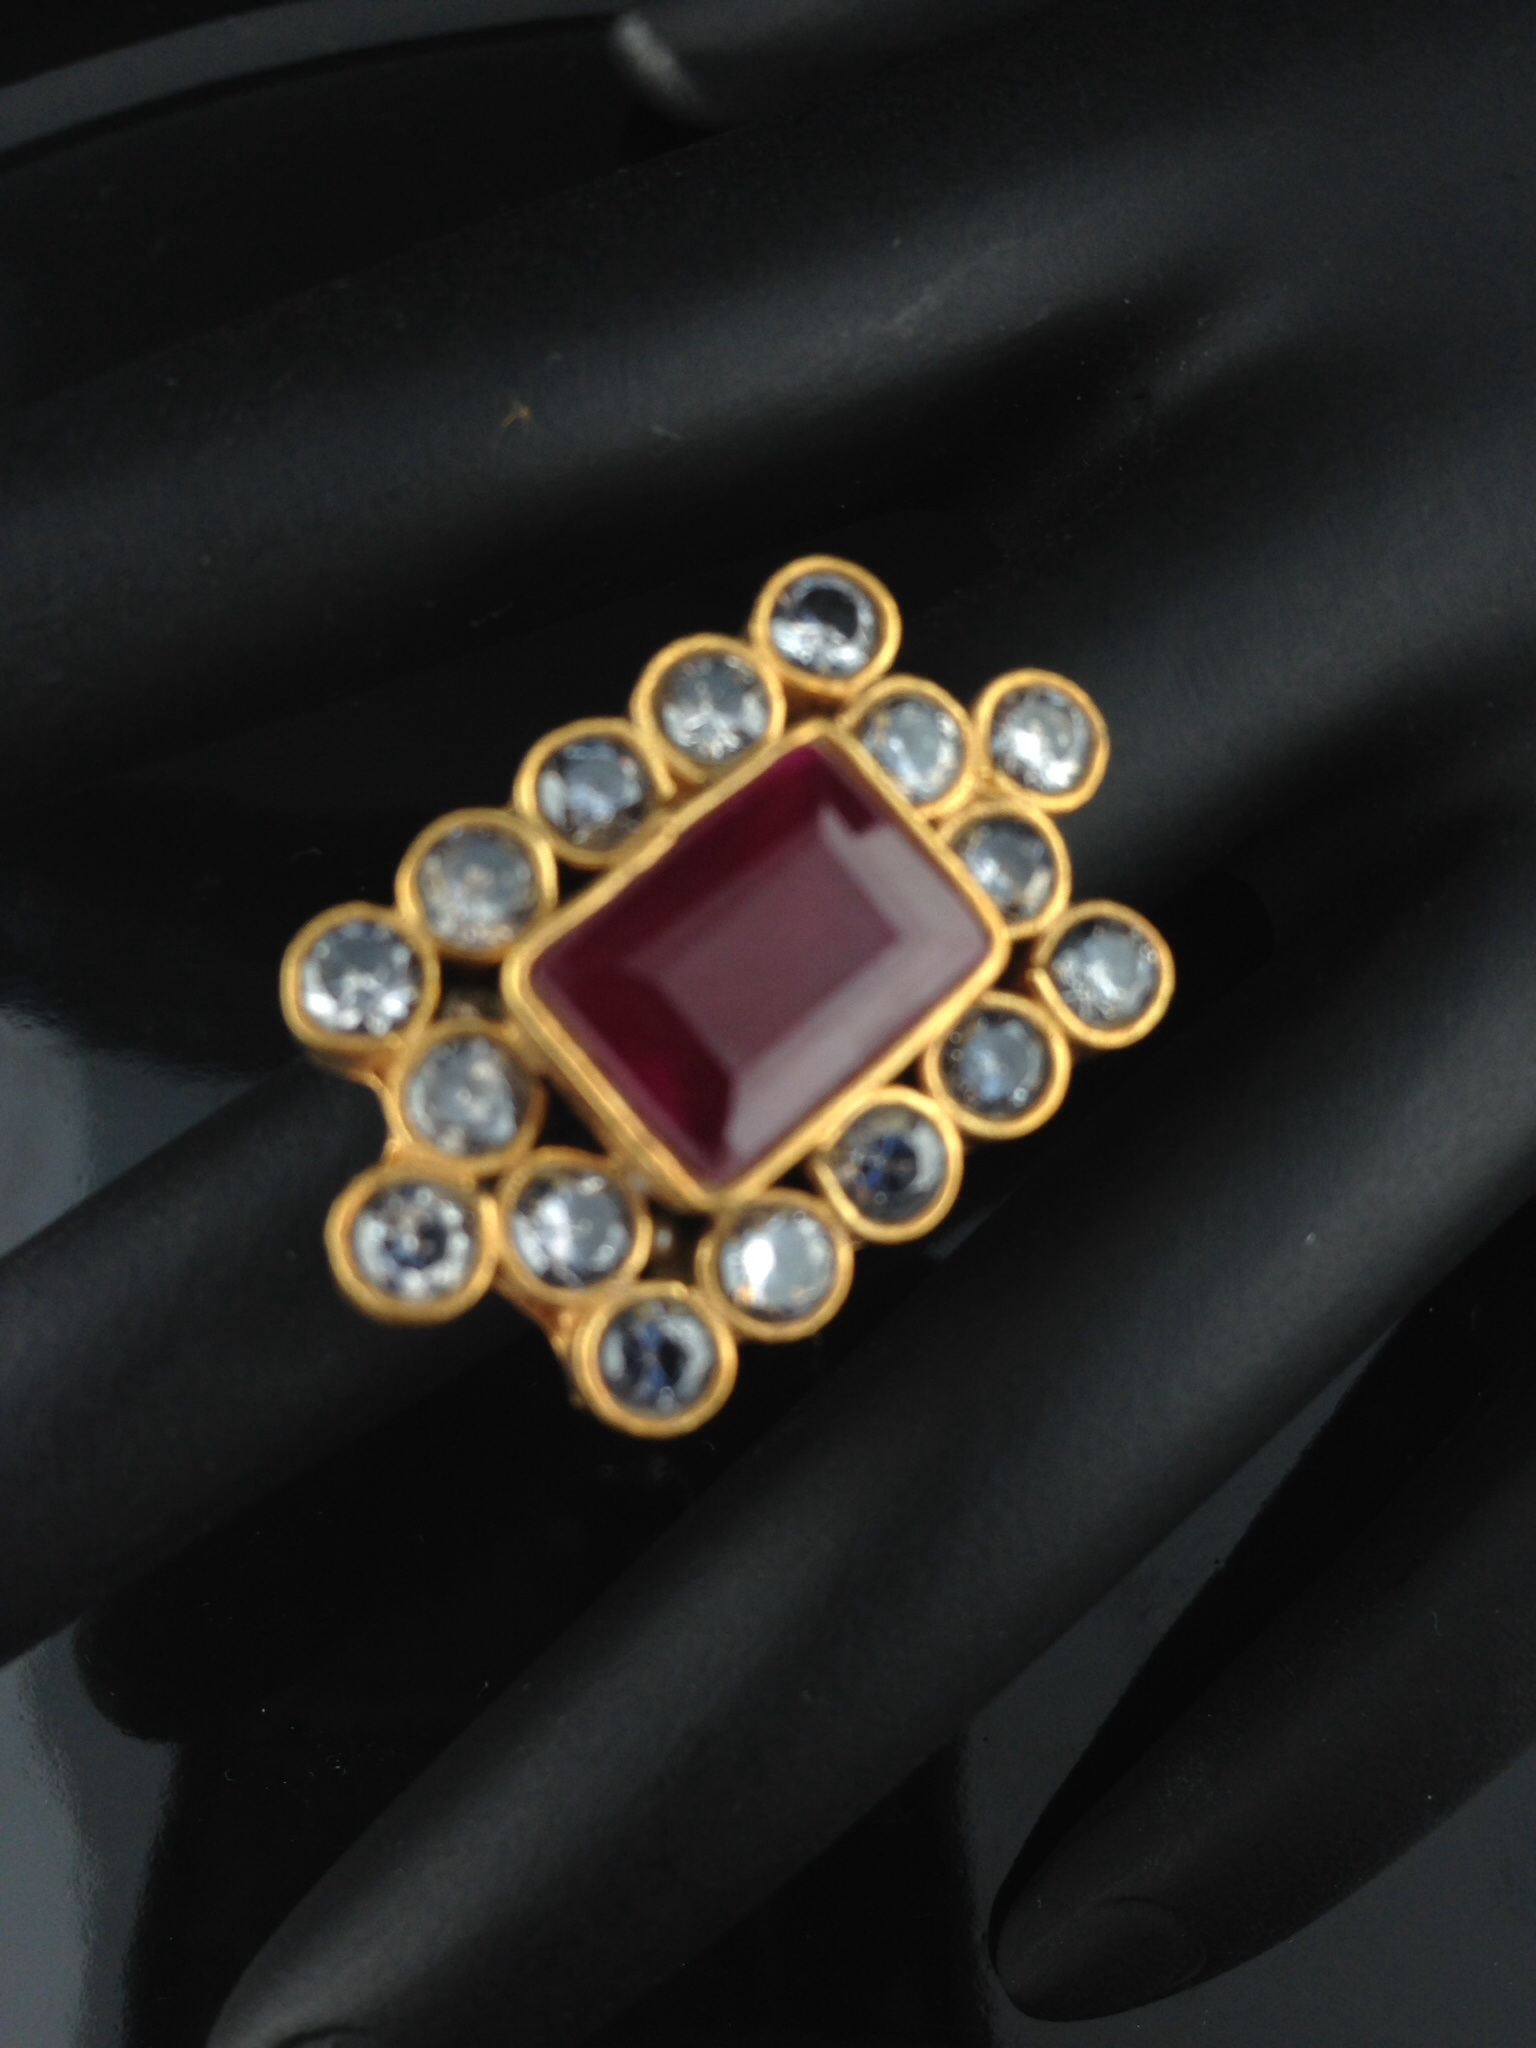 Adjustable Kundan Rings with Rubies and Crystals.